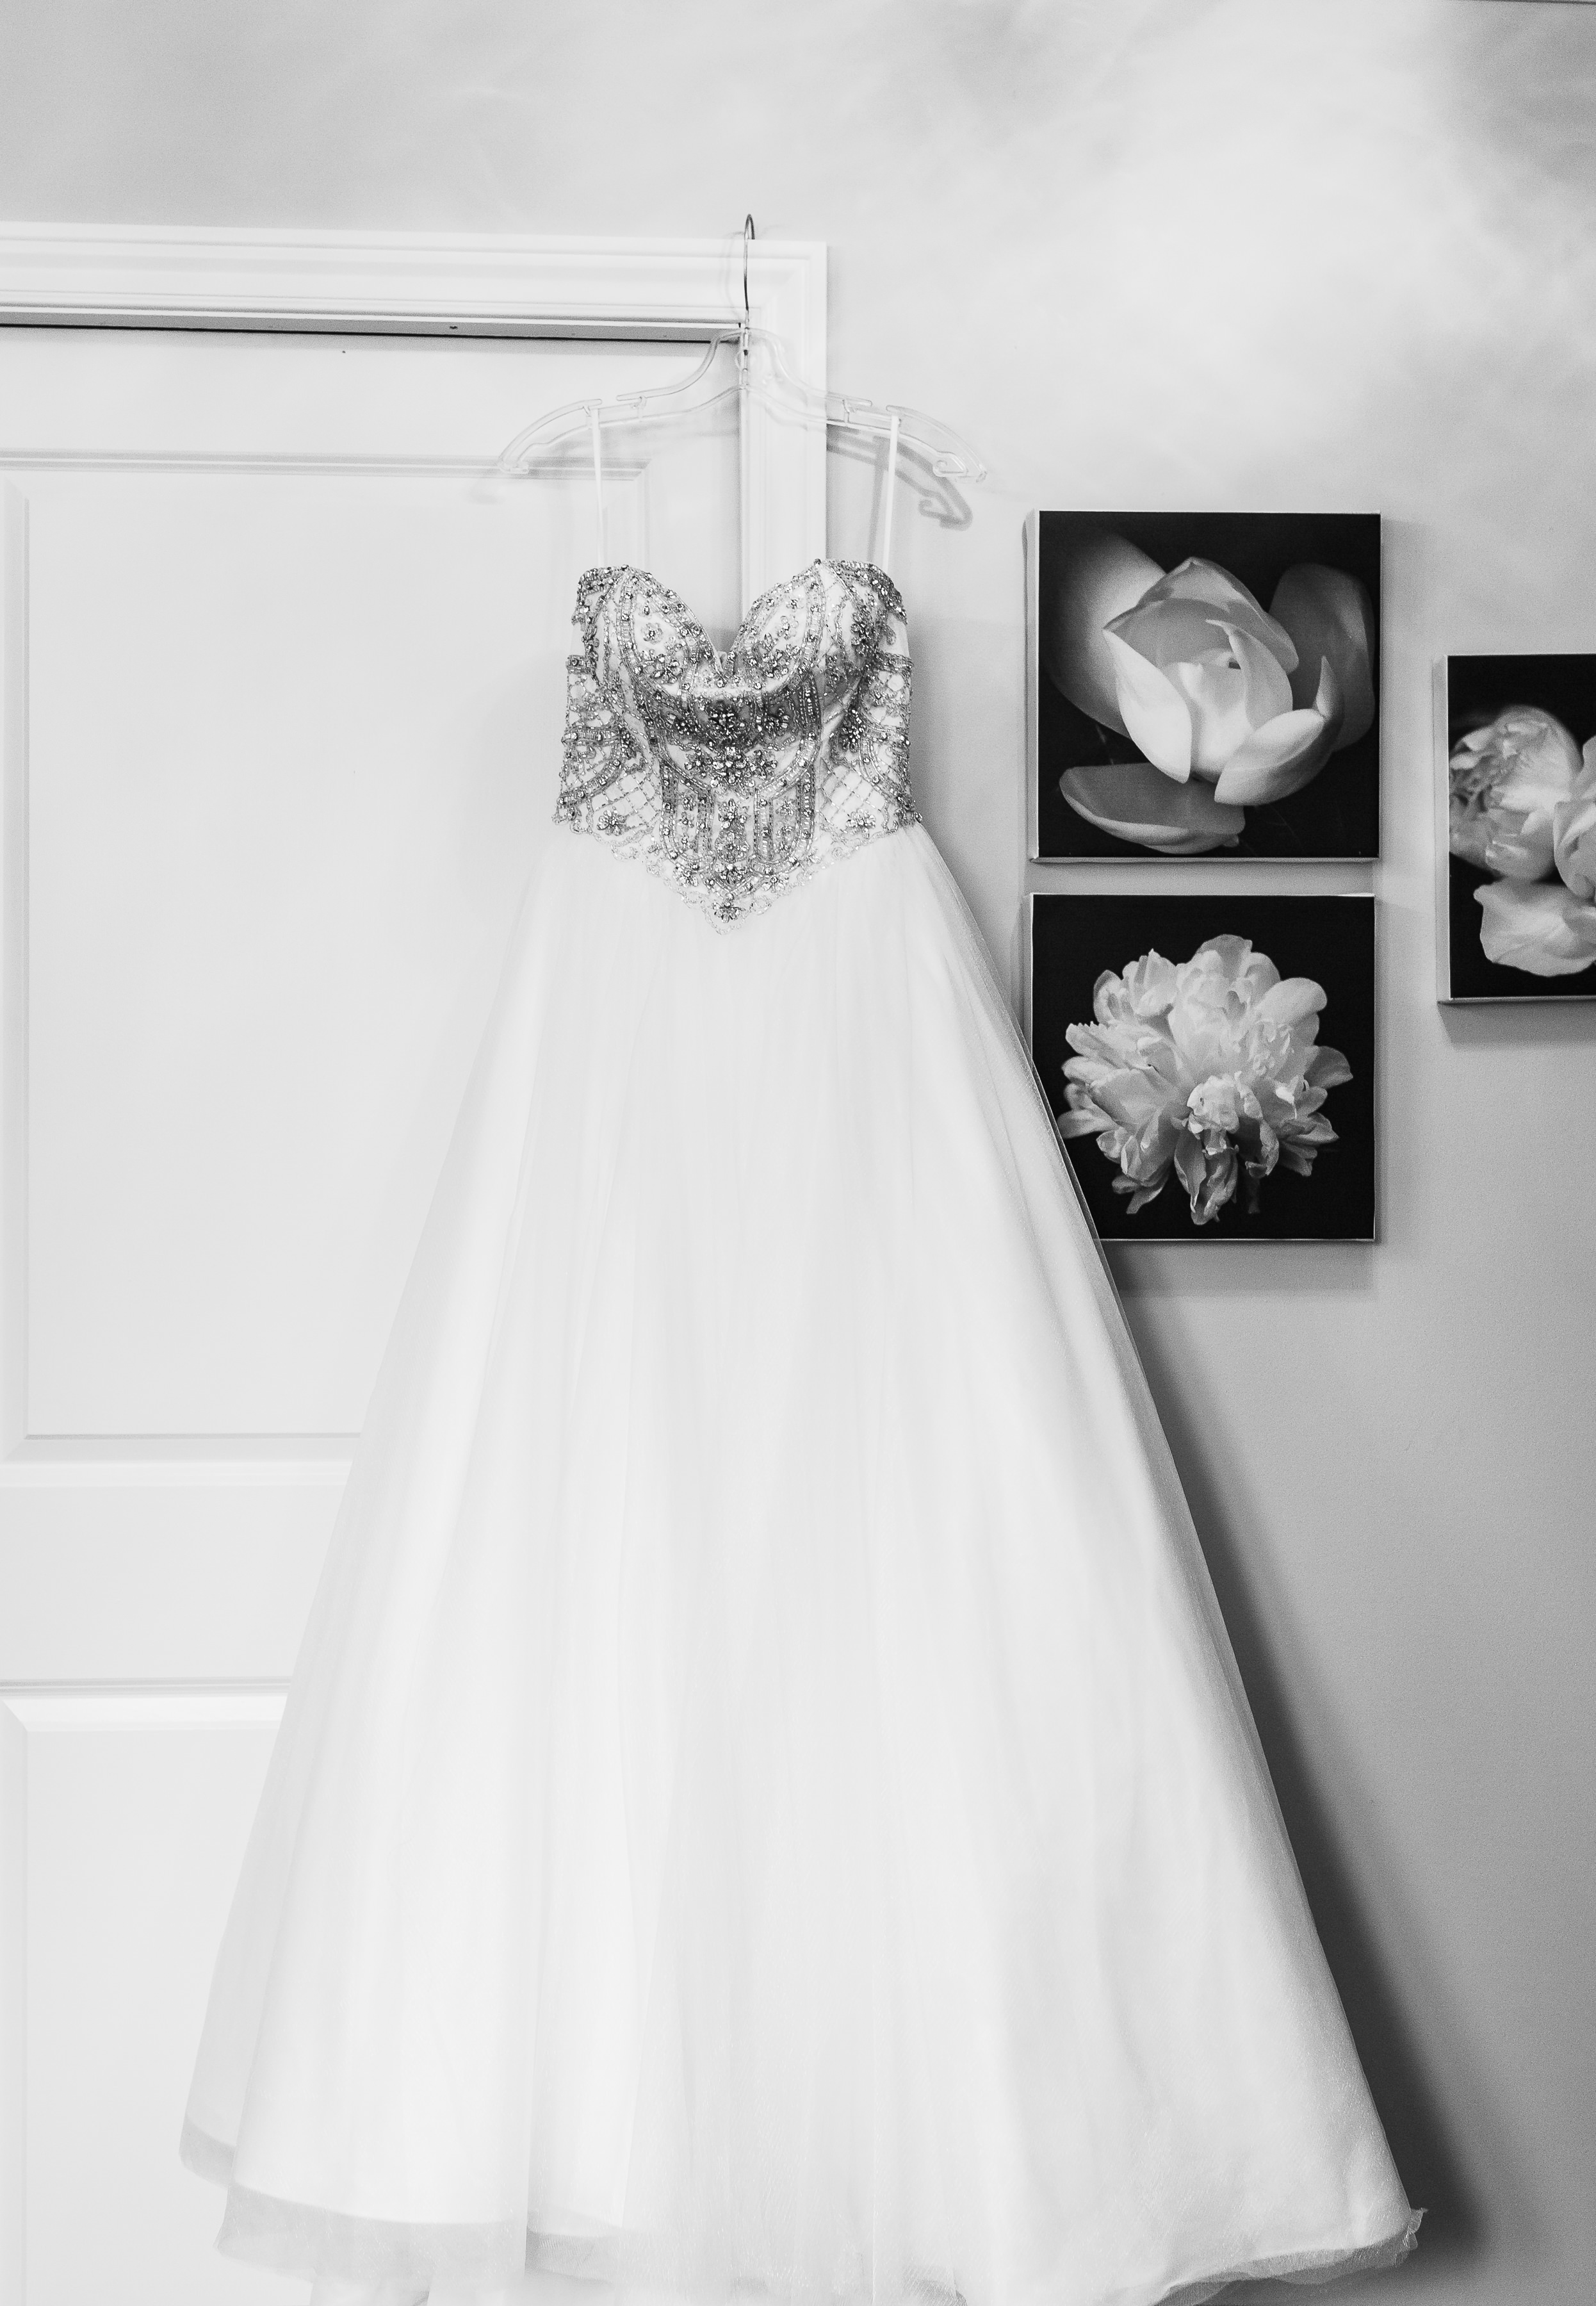 mariage-robe-details-preparation-montreal